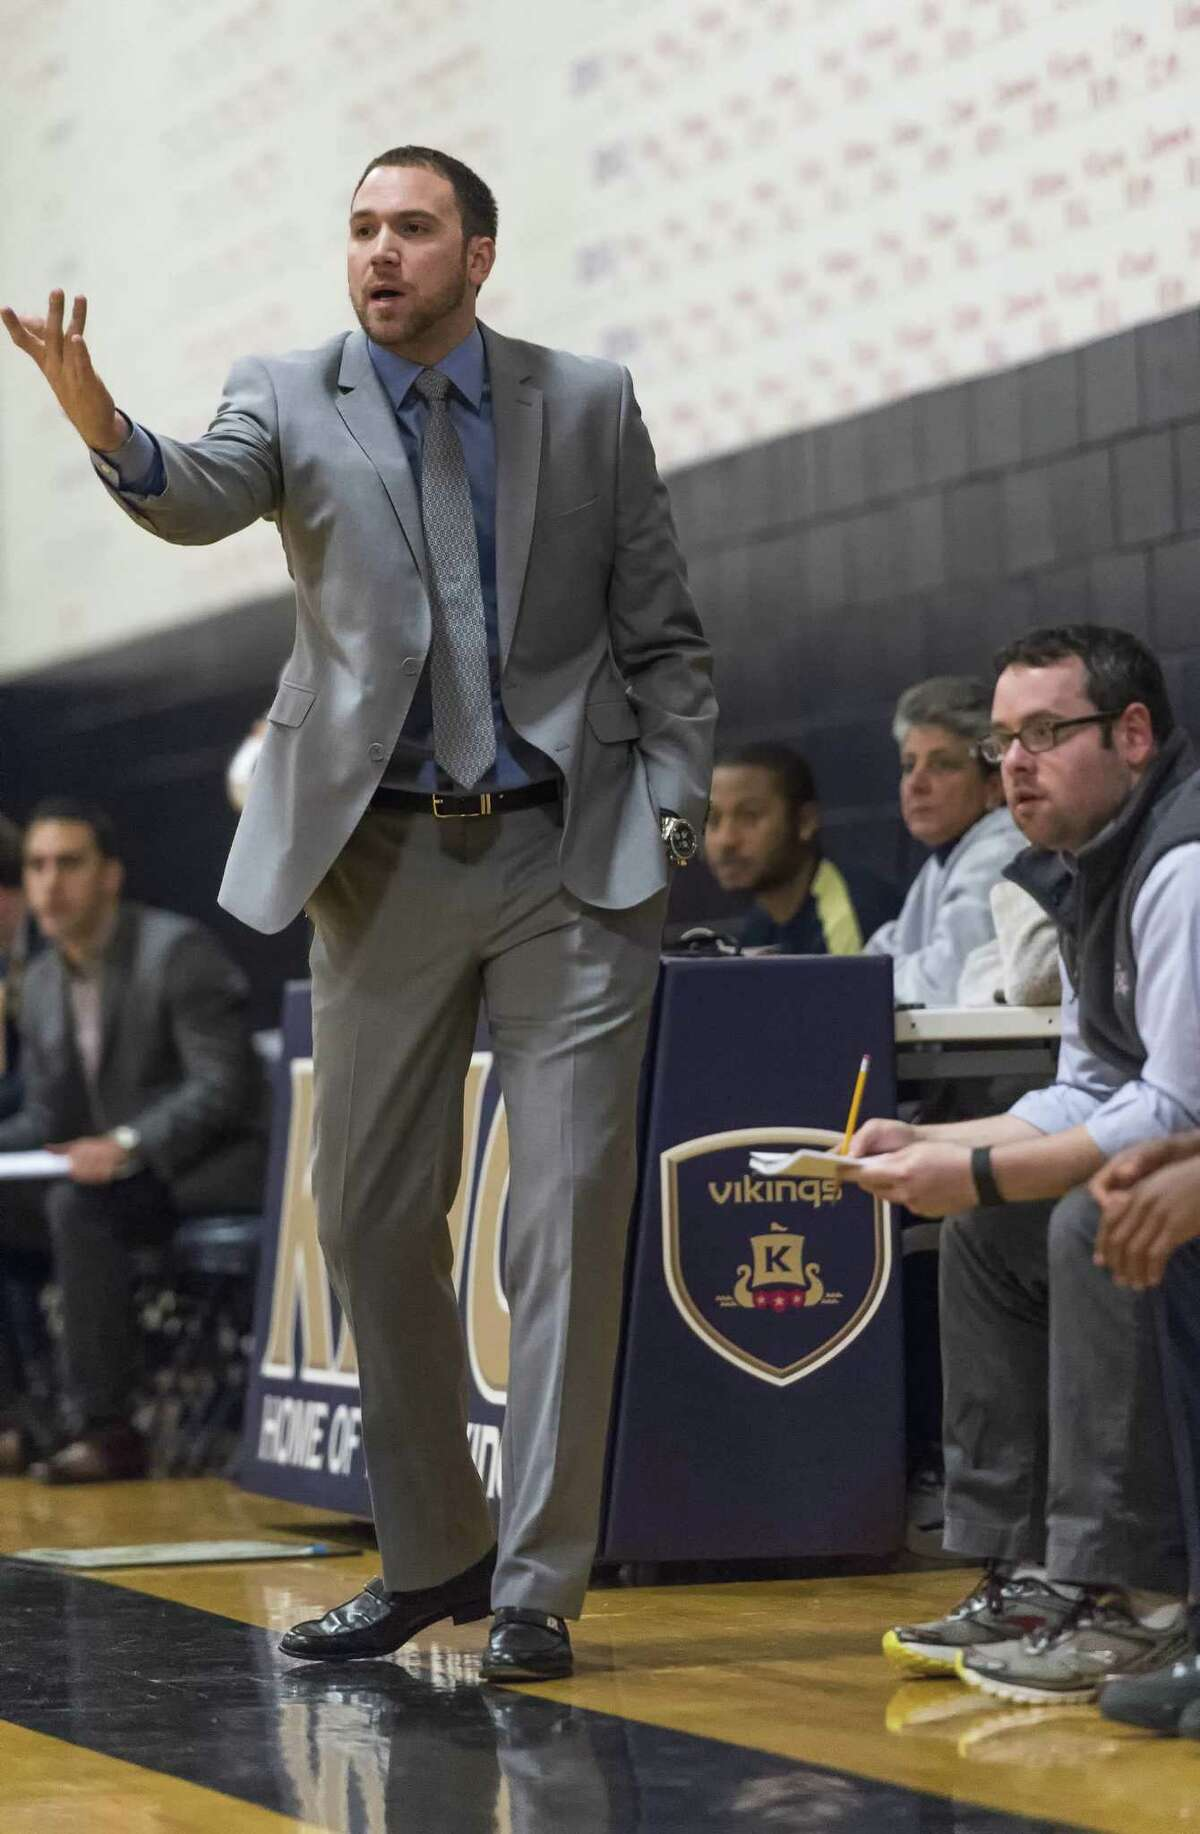 St Luke's School head coach Drew Gladstone during a boys basketball game against King School played at King School, Stamford, CT Thursday, December 10, 2015.